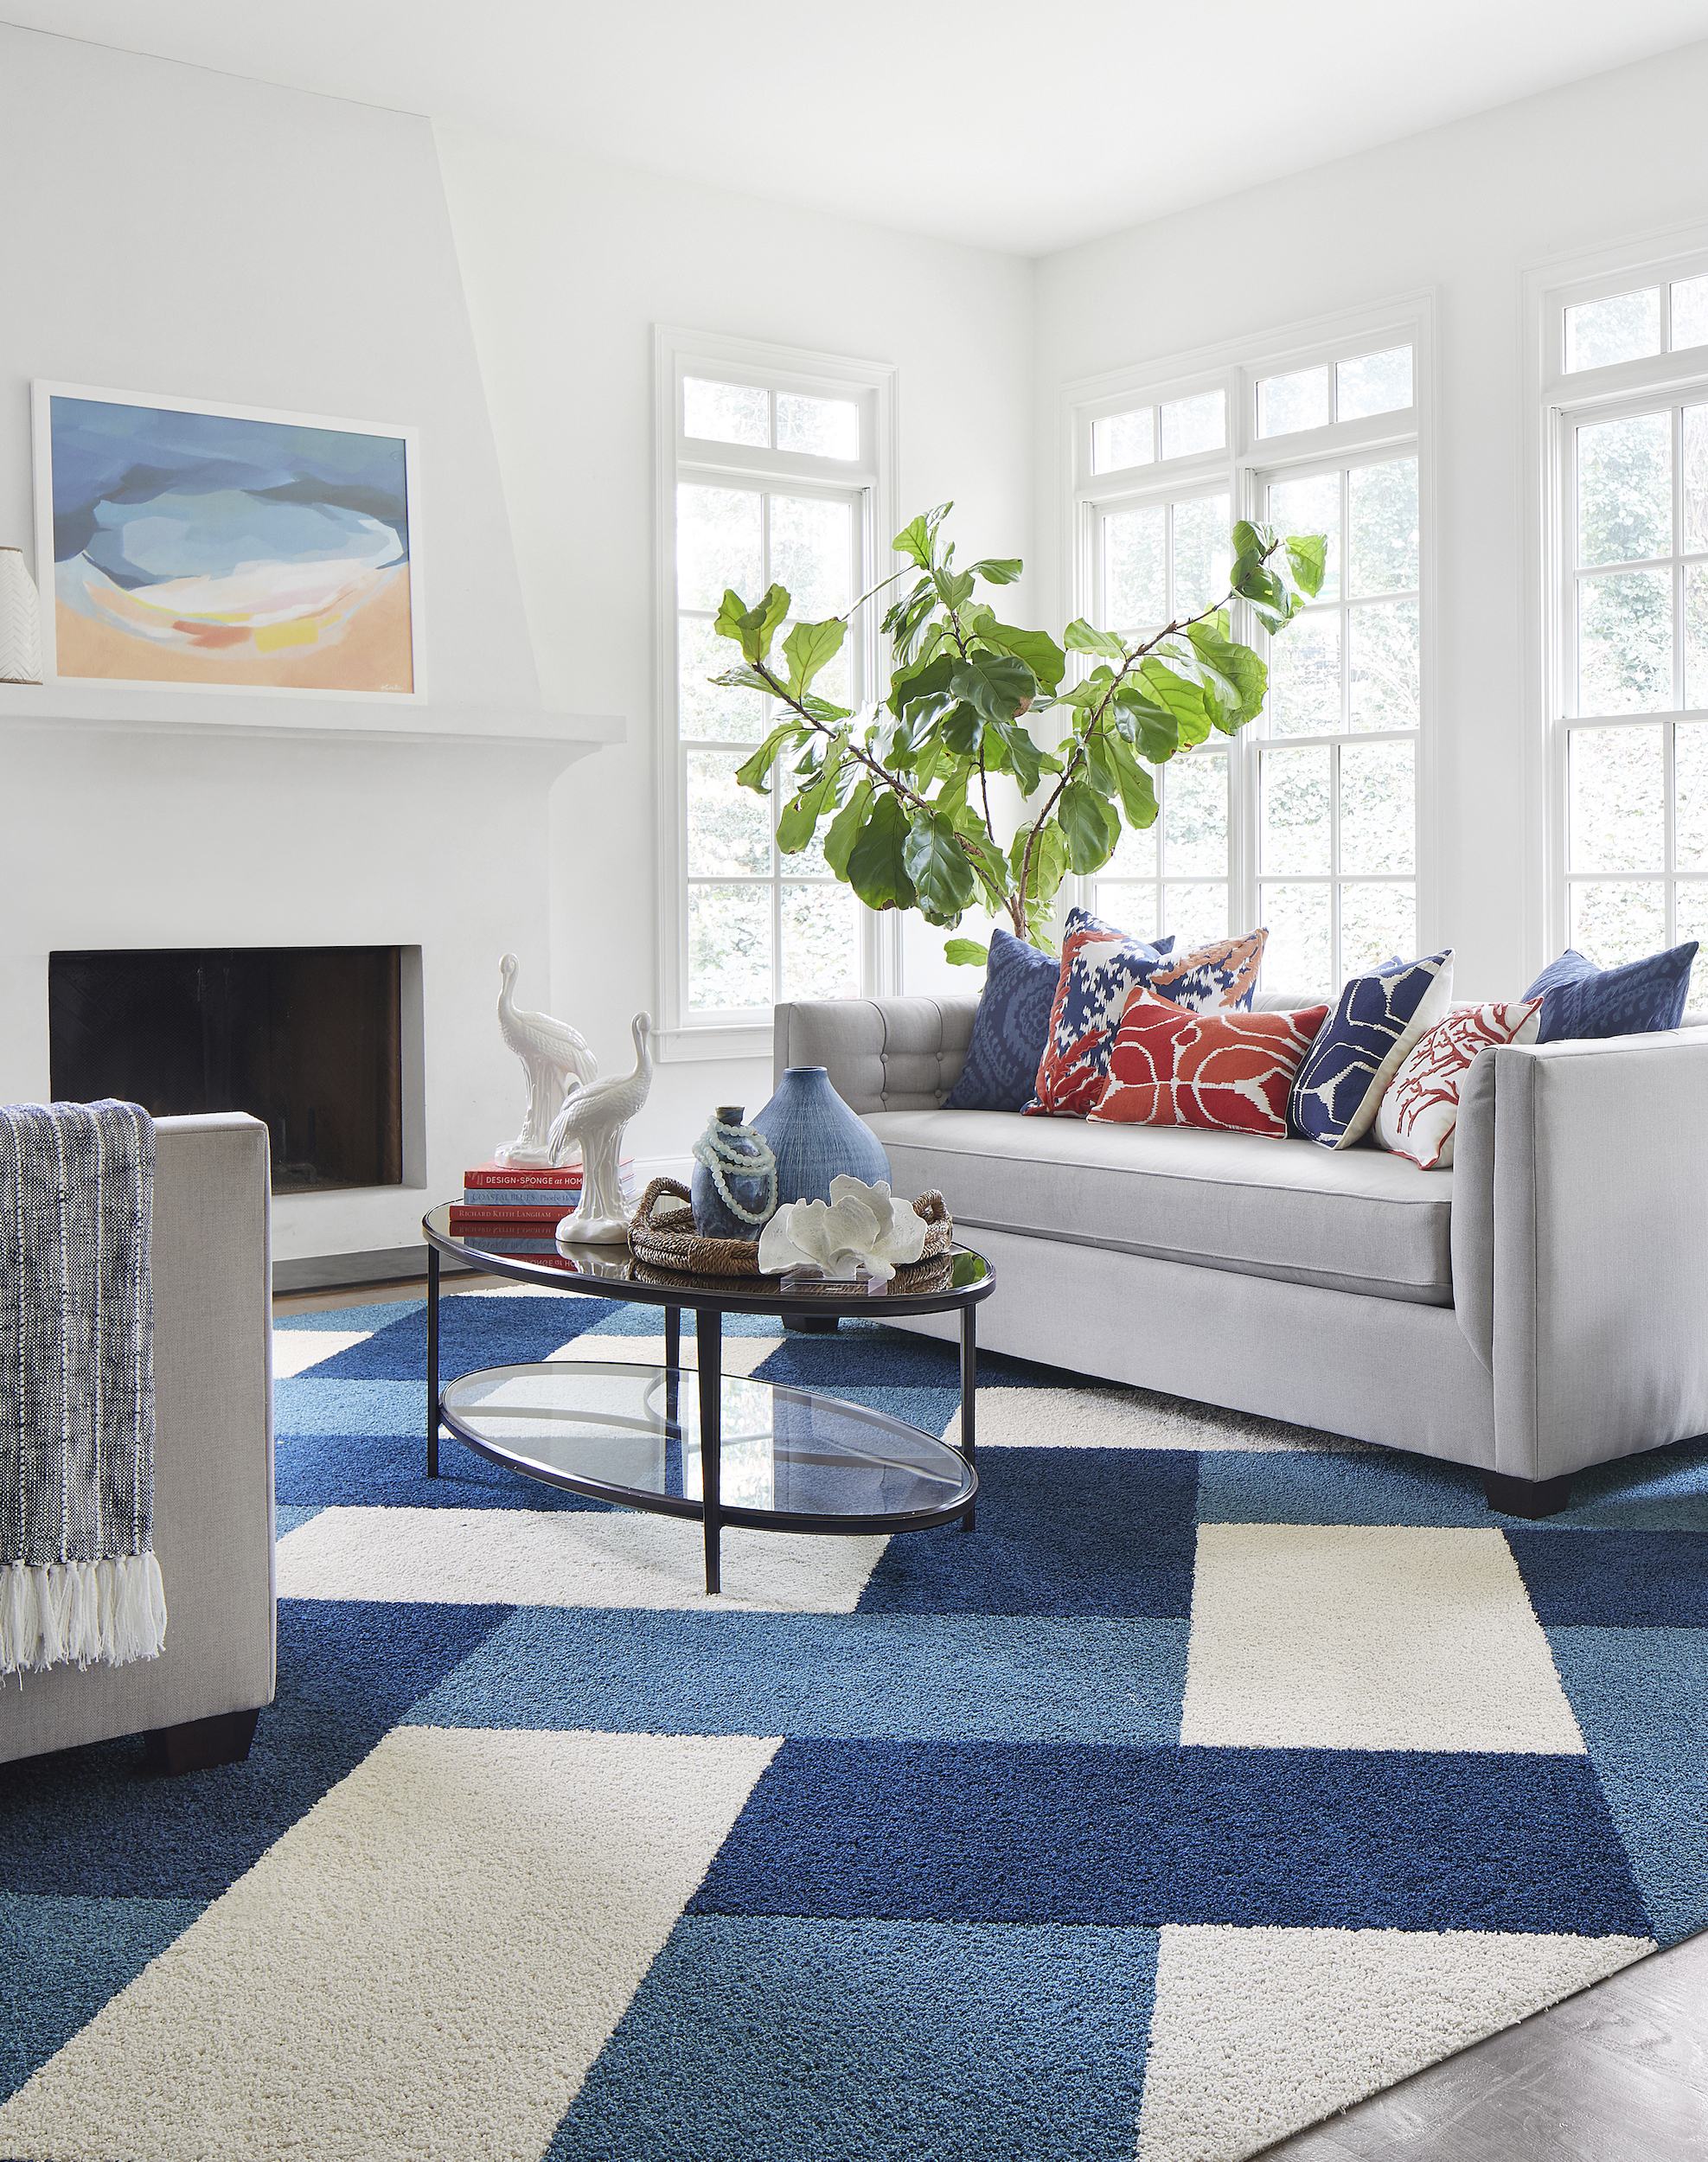 FLOR In the Deep area rug in Bone, Cobalt, and Tidal, a gray couch, blue and orange pillows, and an oval coffee table.